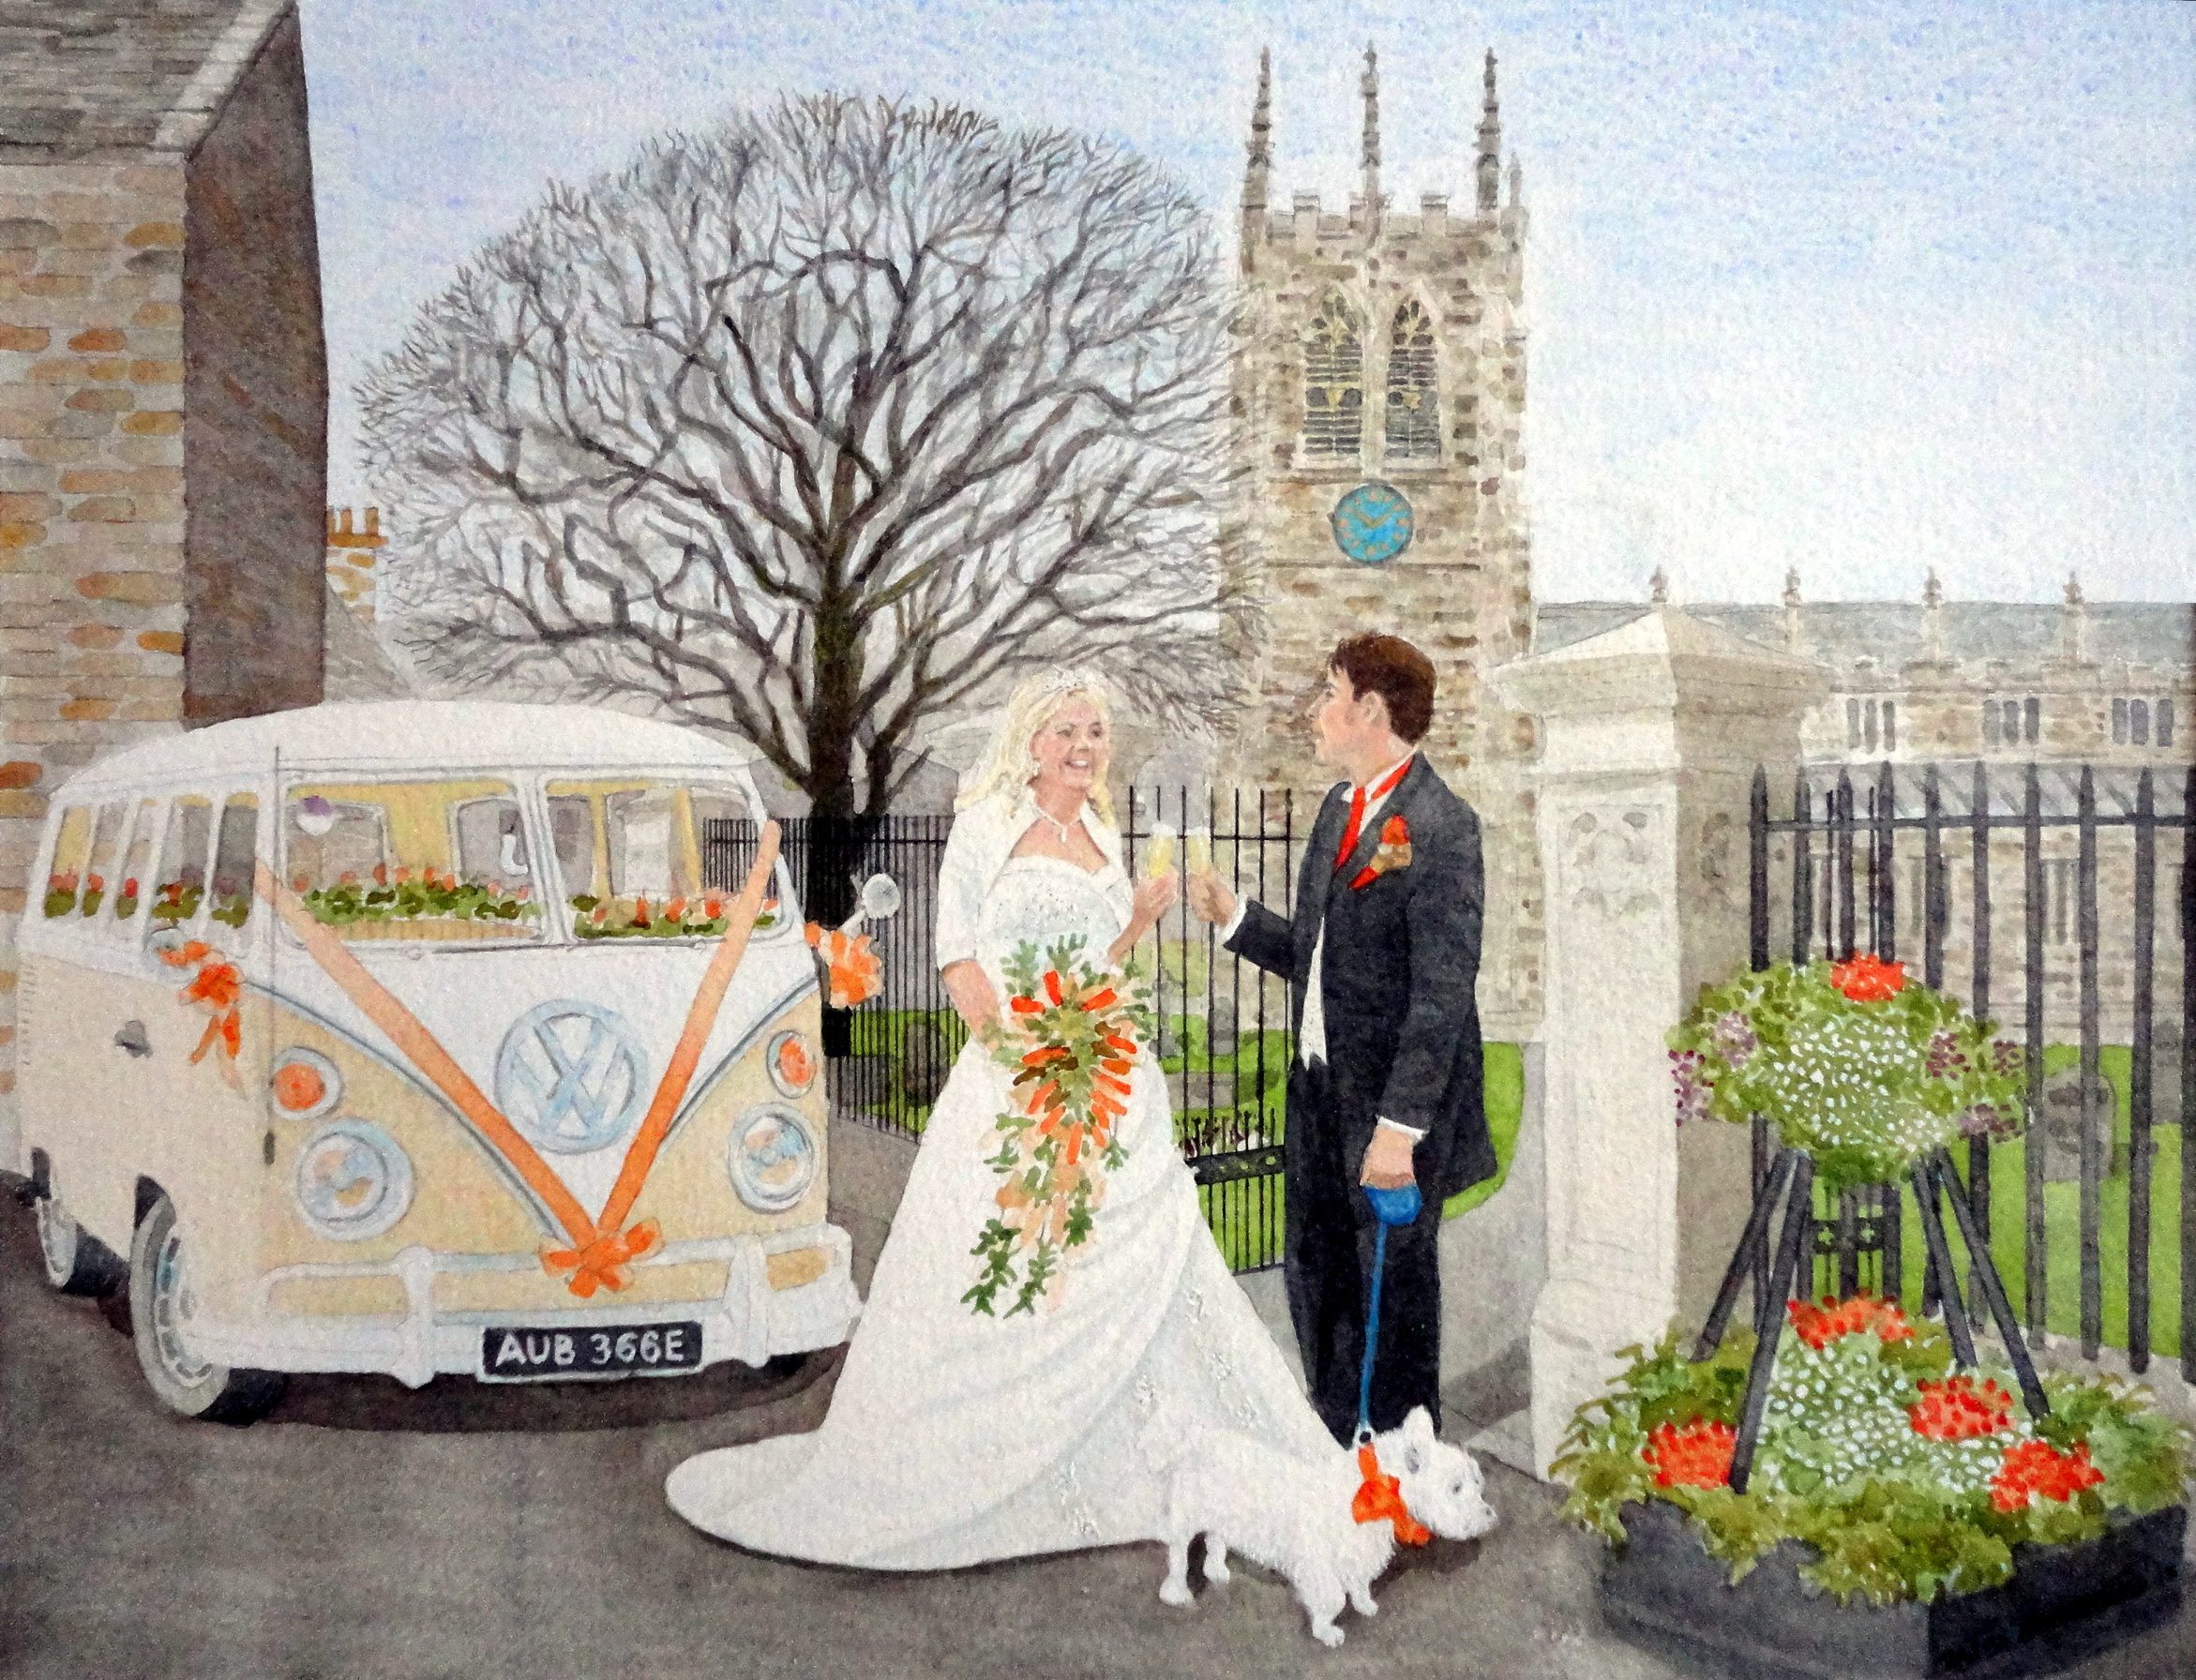 SURPRISE WEDDING PRESENT FOR YOUNG GUN AND HIS WIFE painted by DAVID APPLEYARD